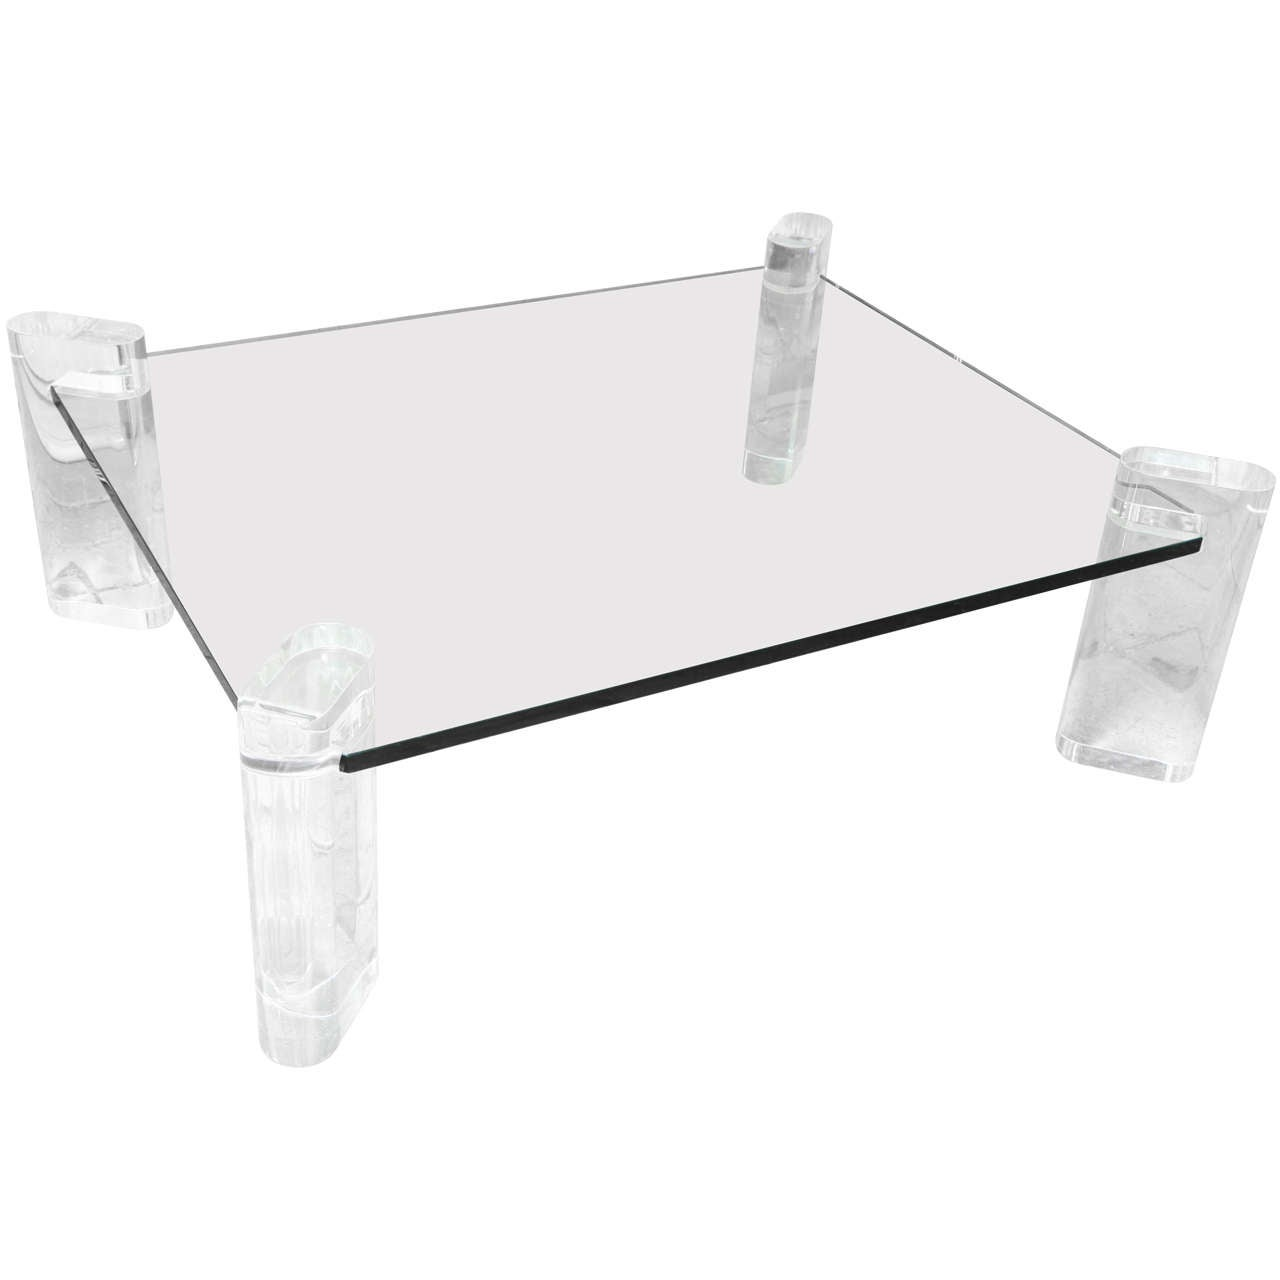 Karl Springer Thick Lucite Leg And Glass Coffee Table At 1stdibs